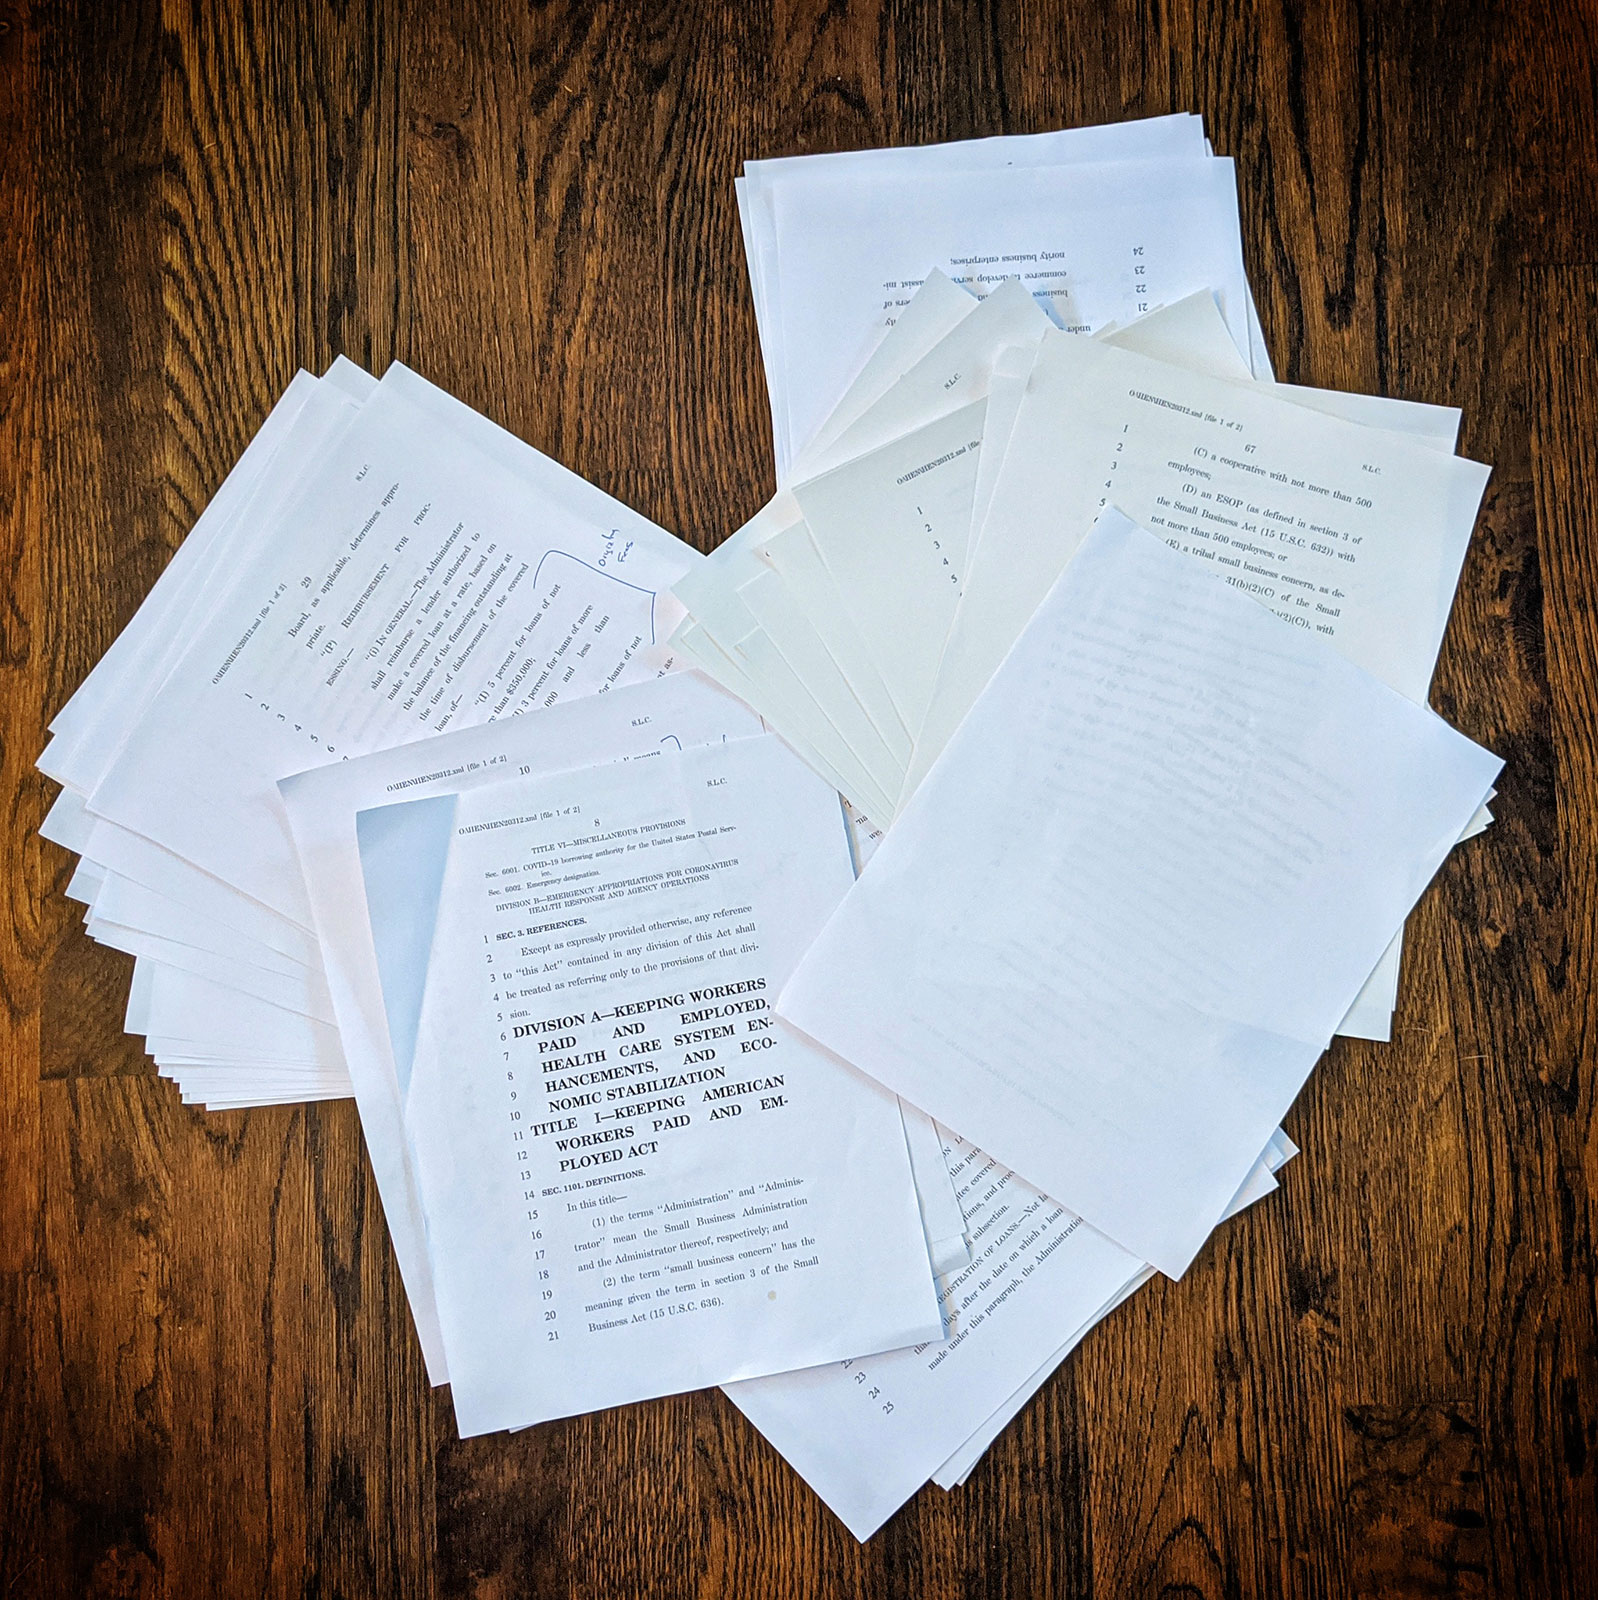 A photo depicting documents used to file for a small business loan during the 2020 COVID-19 pandemic, taken in Atlanta, GA.